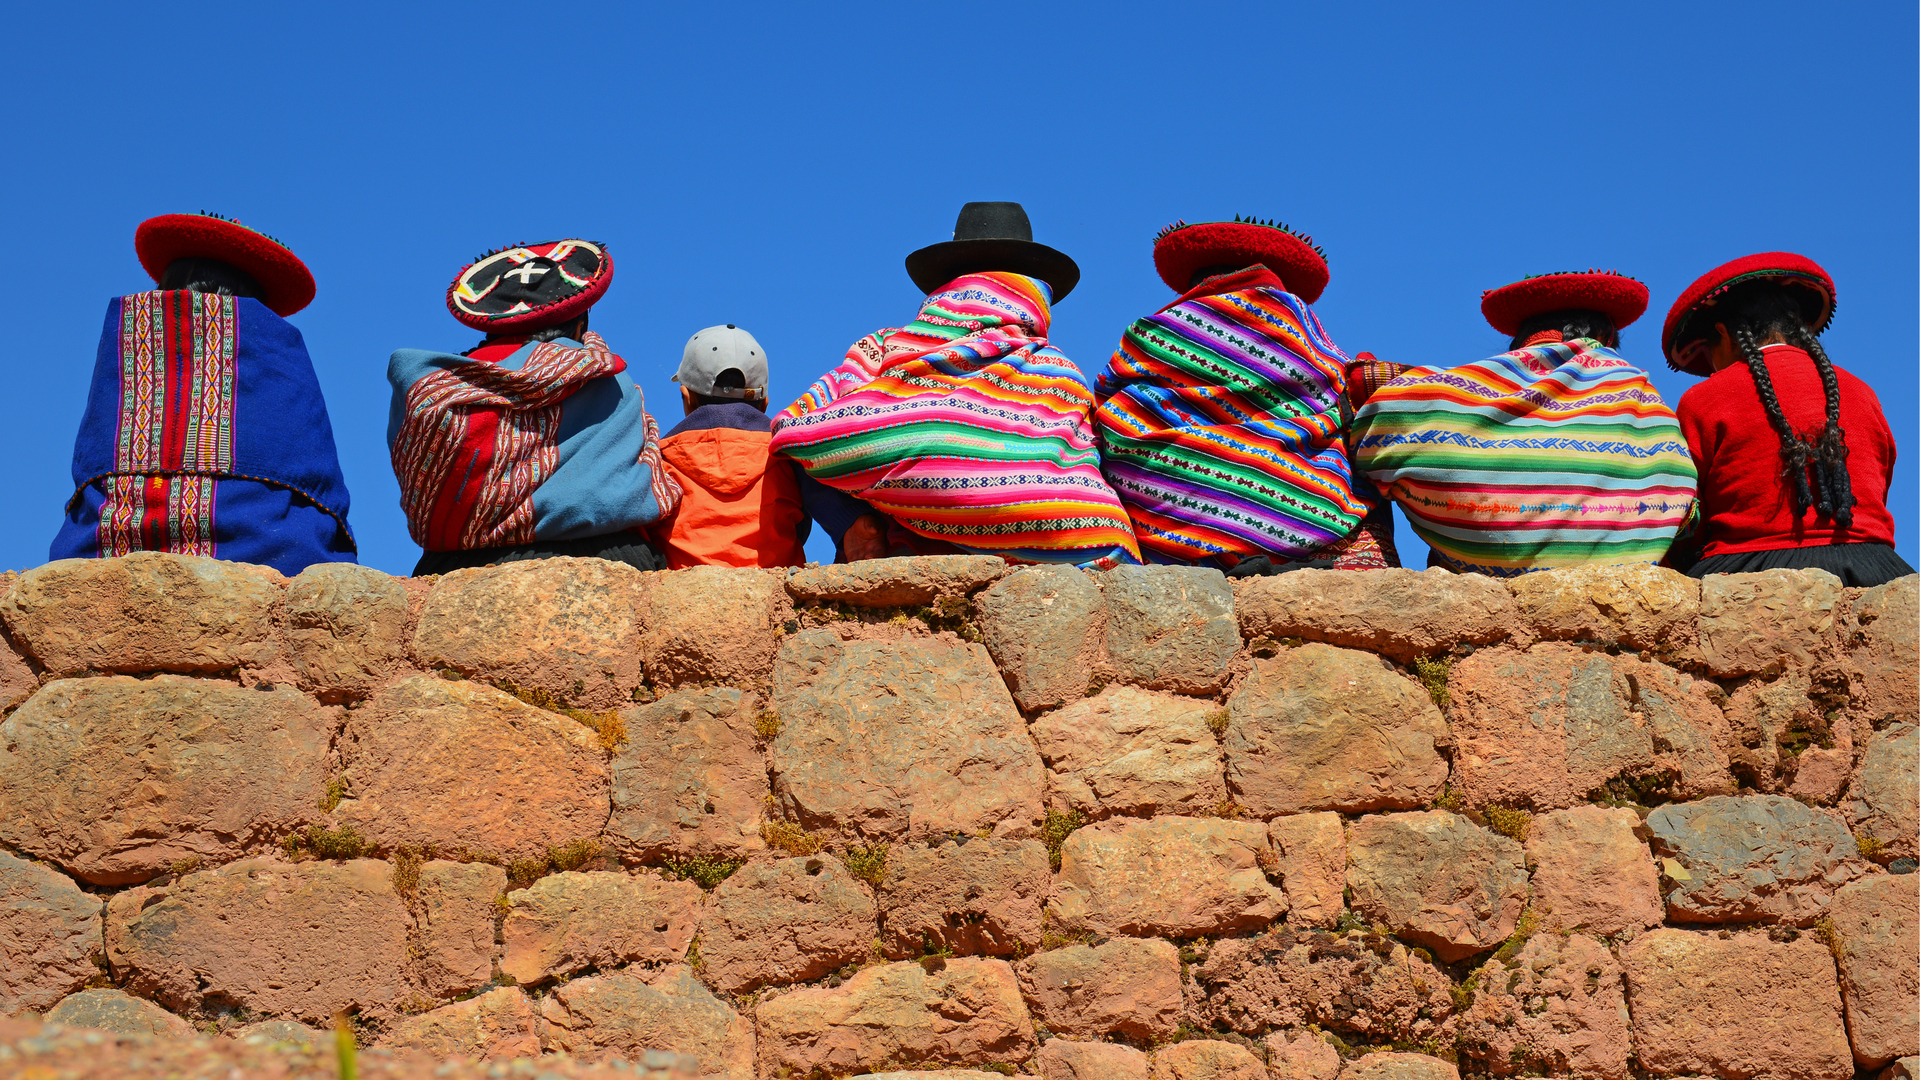 Traditional local Quechua dress